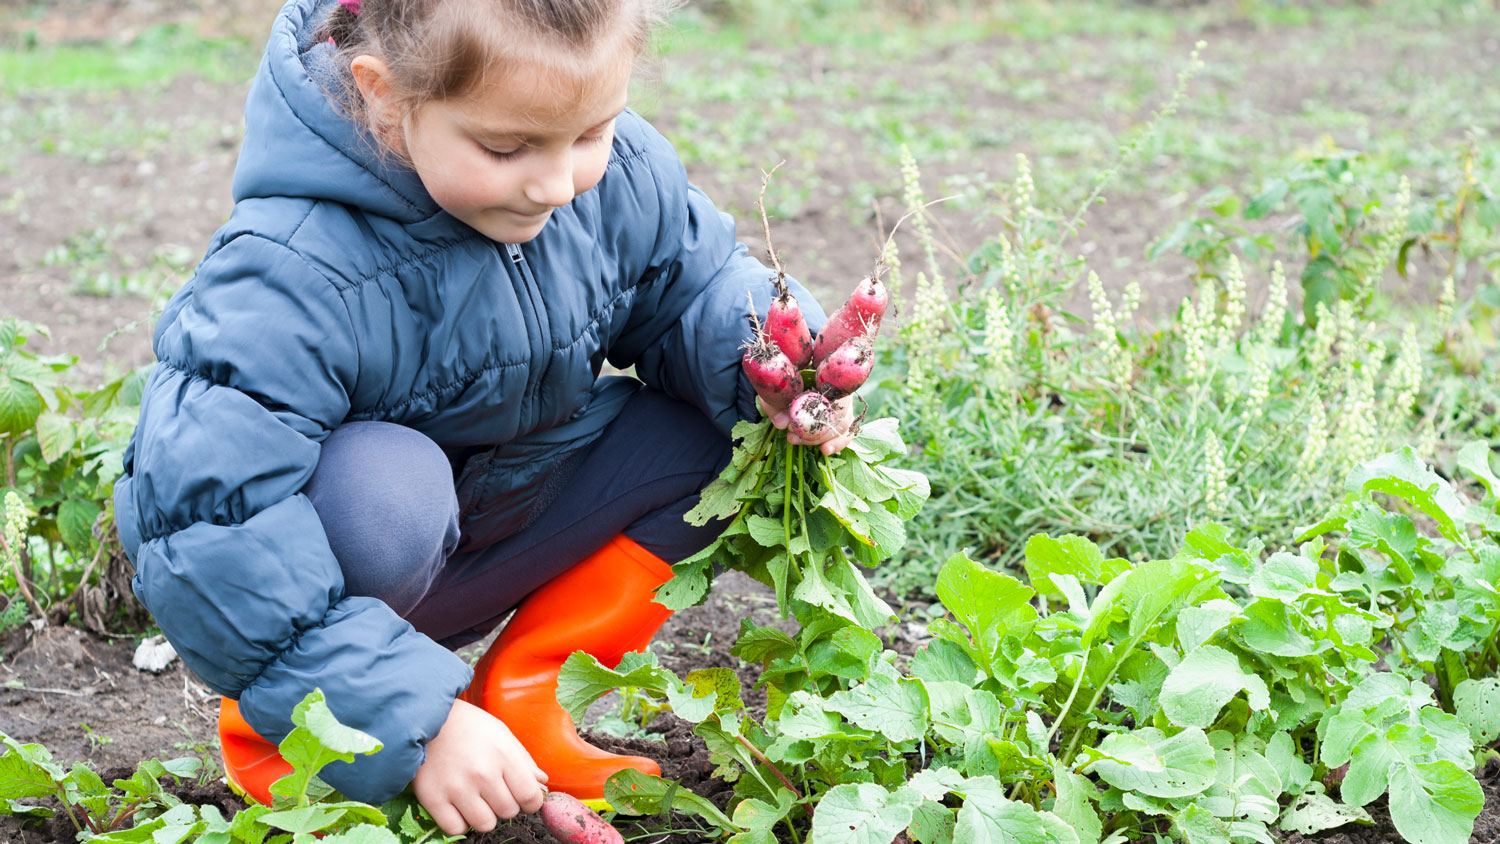 A young girl picking radishes from a garden